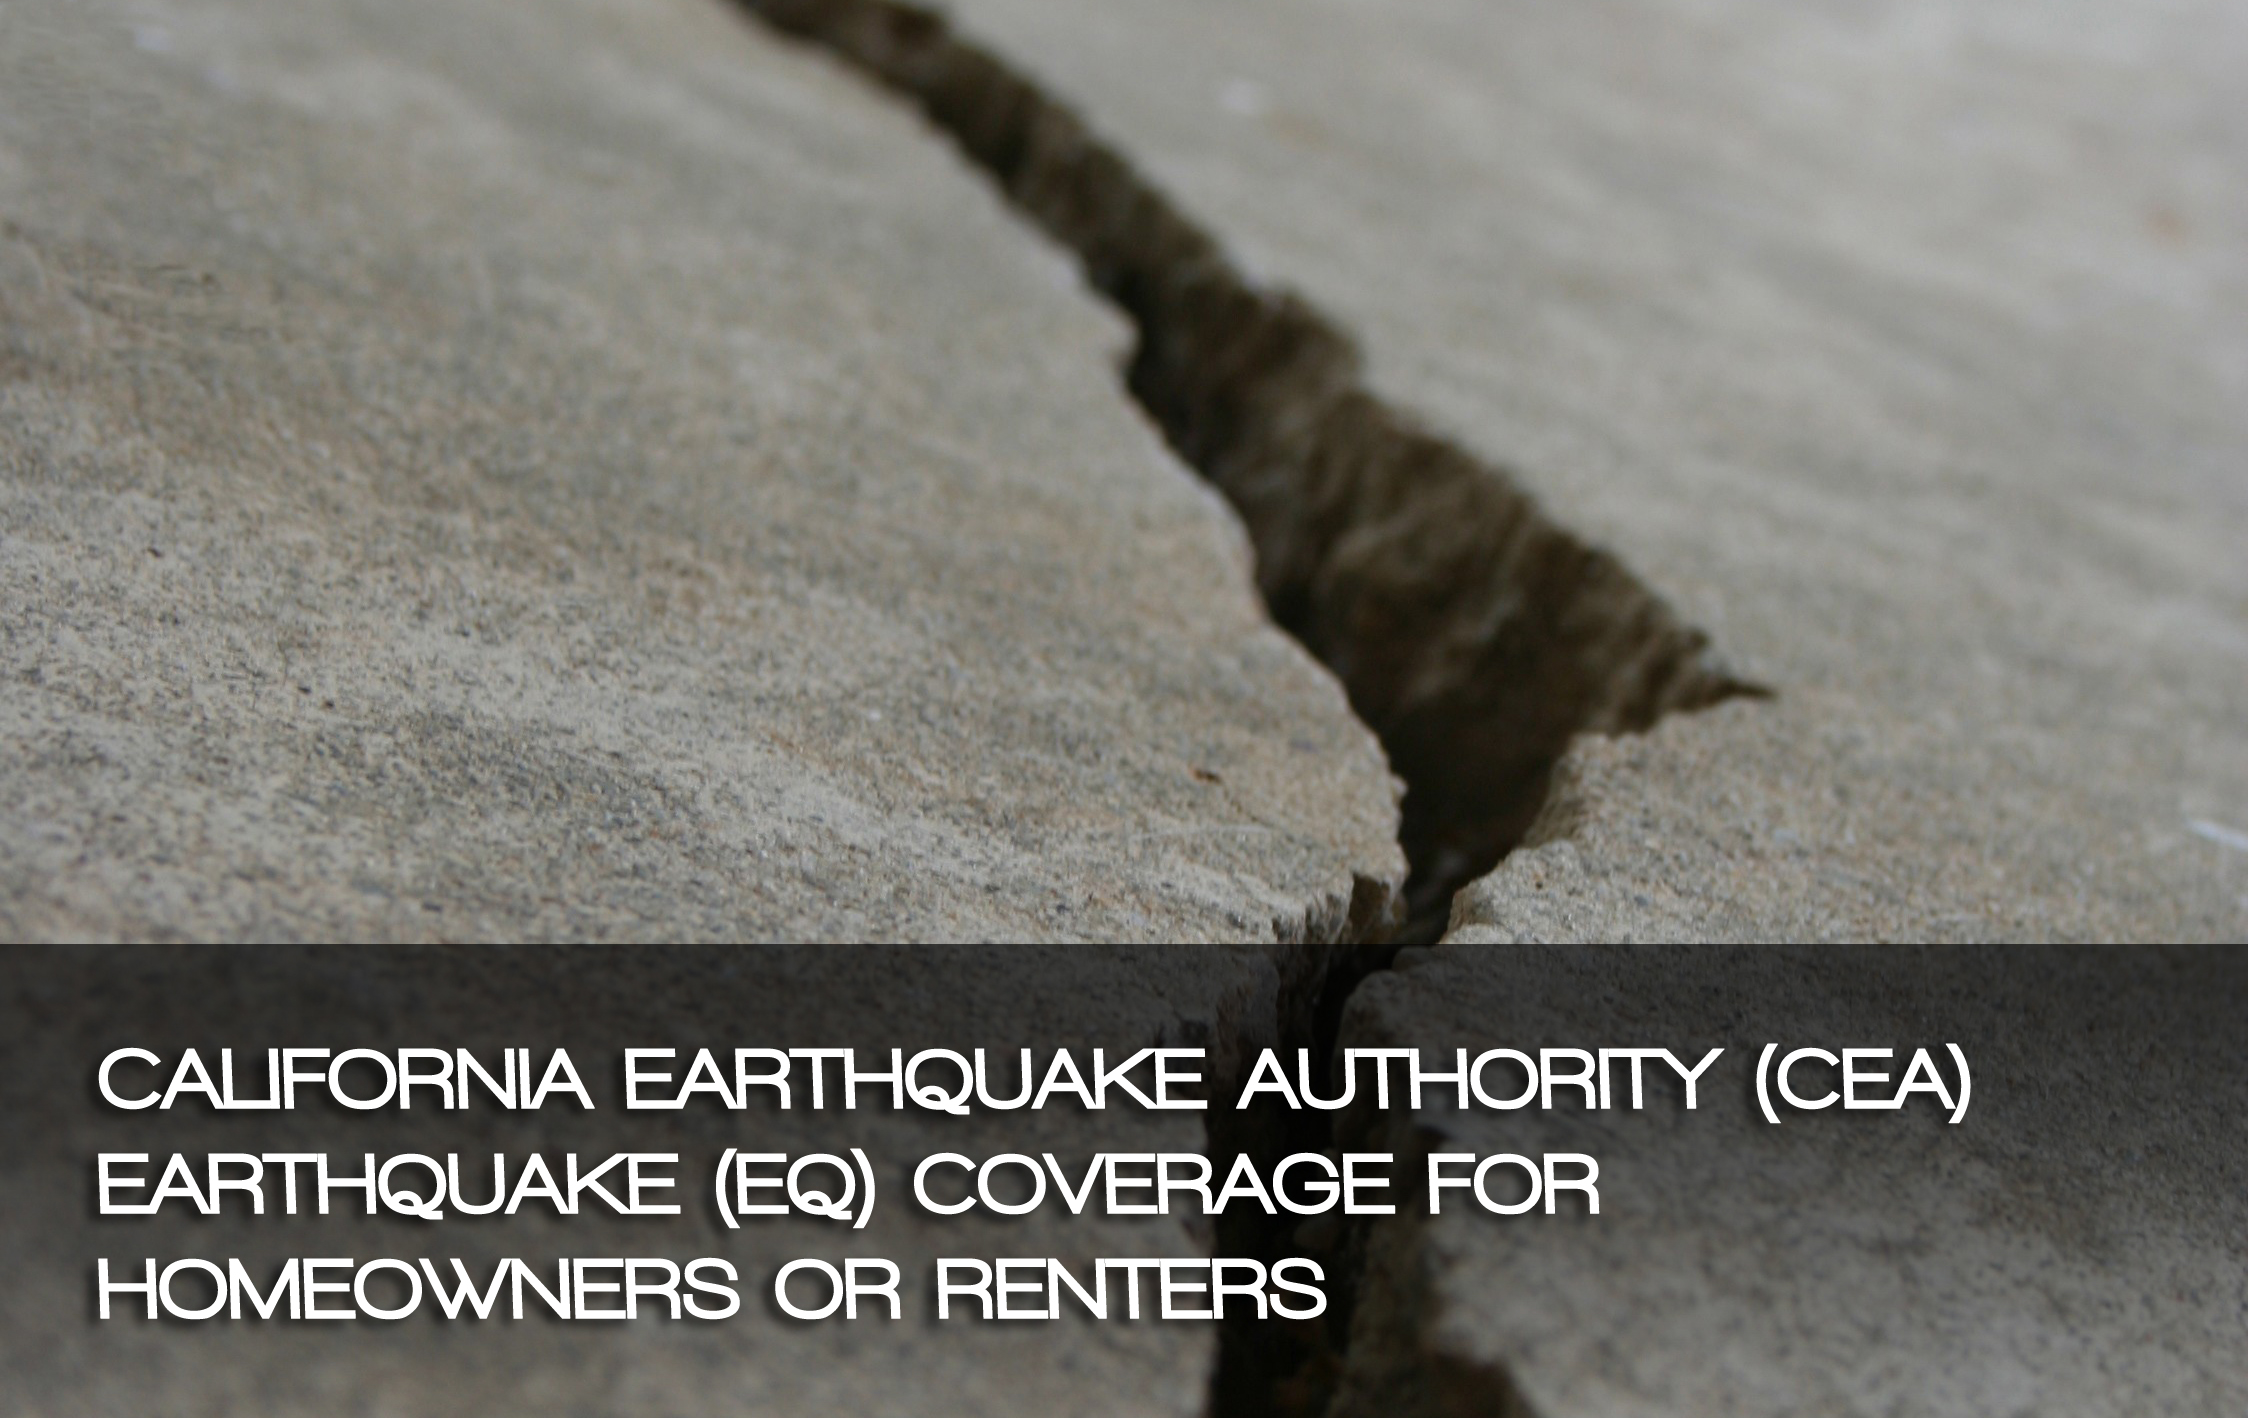 CALIFORNIA EARTHQUAKE AUTHORITY (CEA) EARTHQUAKE (EQ) COVERAGE FOR HOMEOWNERS OR RENTERS  – Article provided by Erin Rose